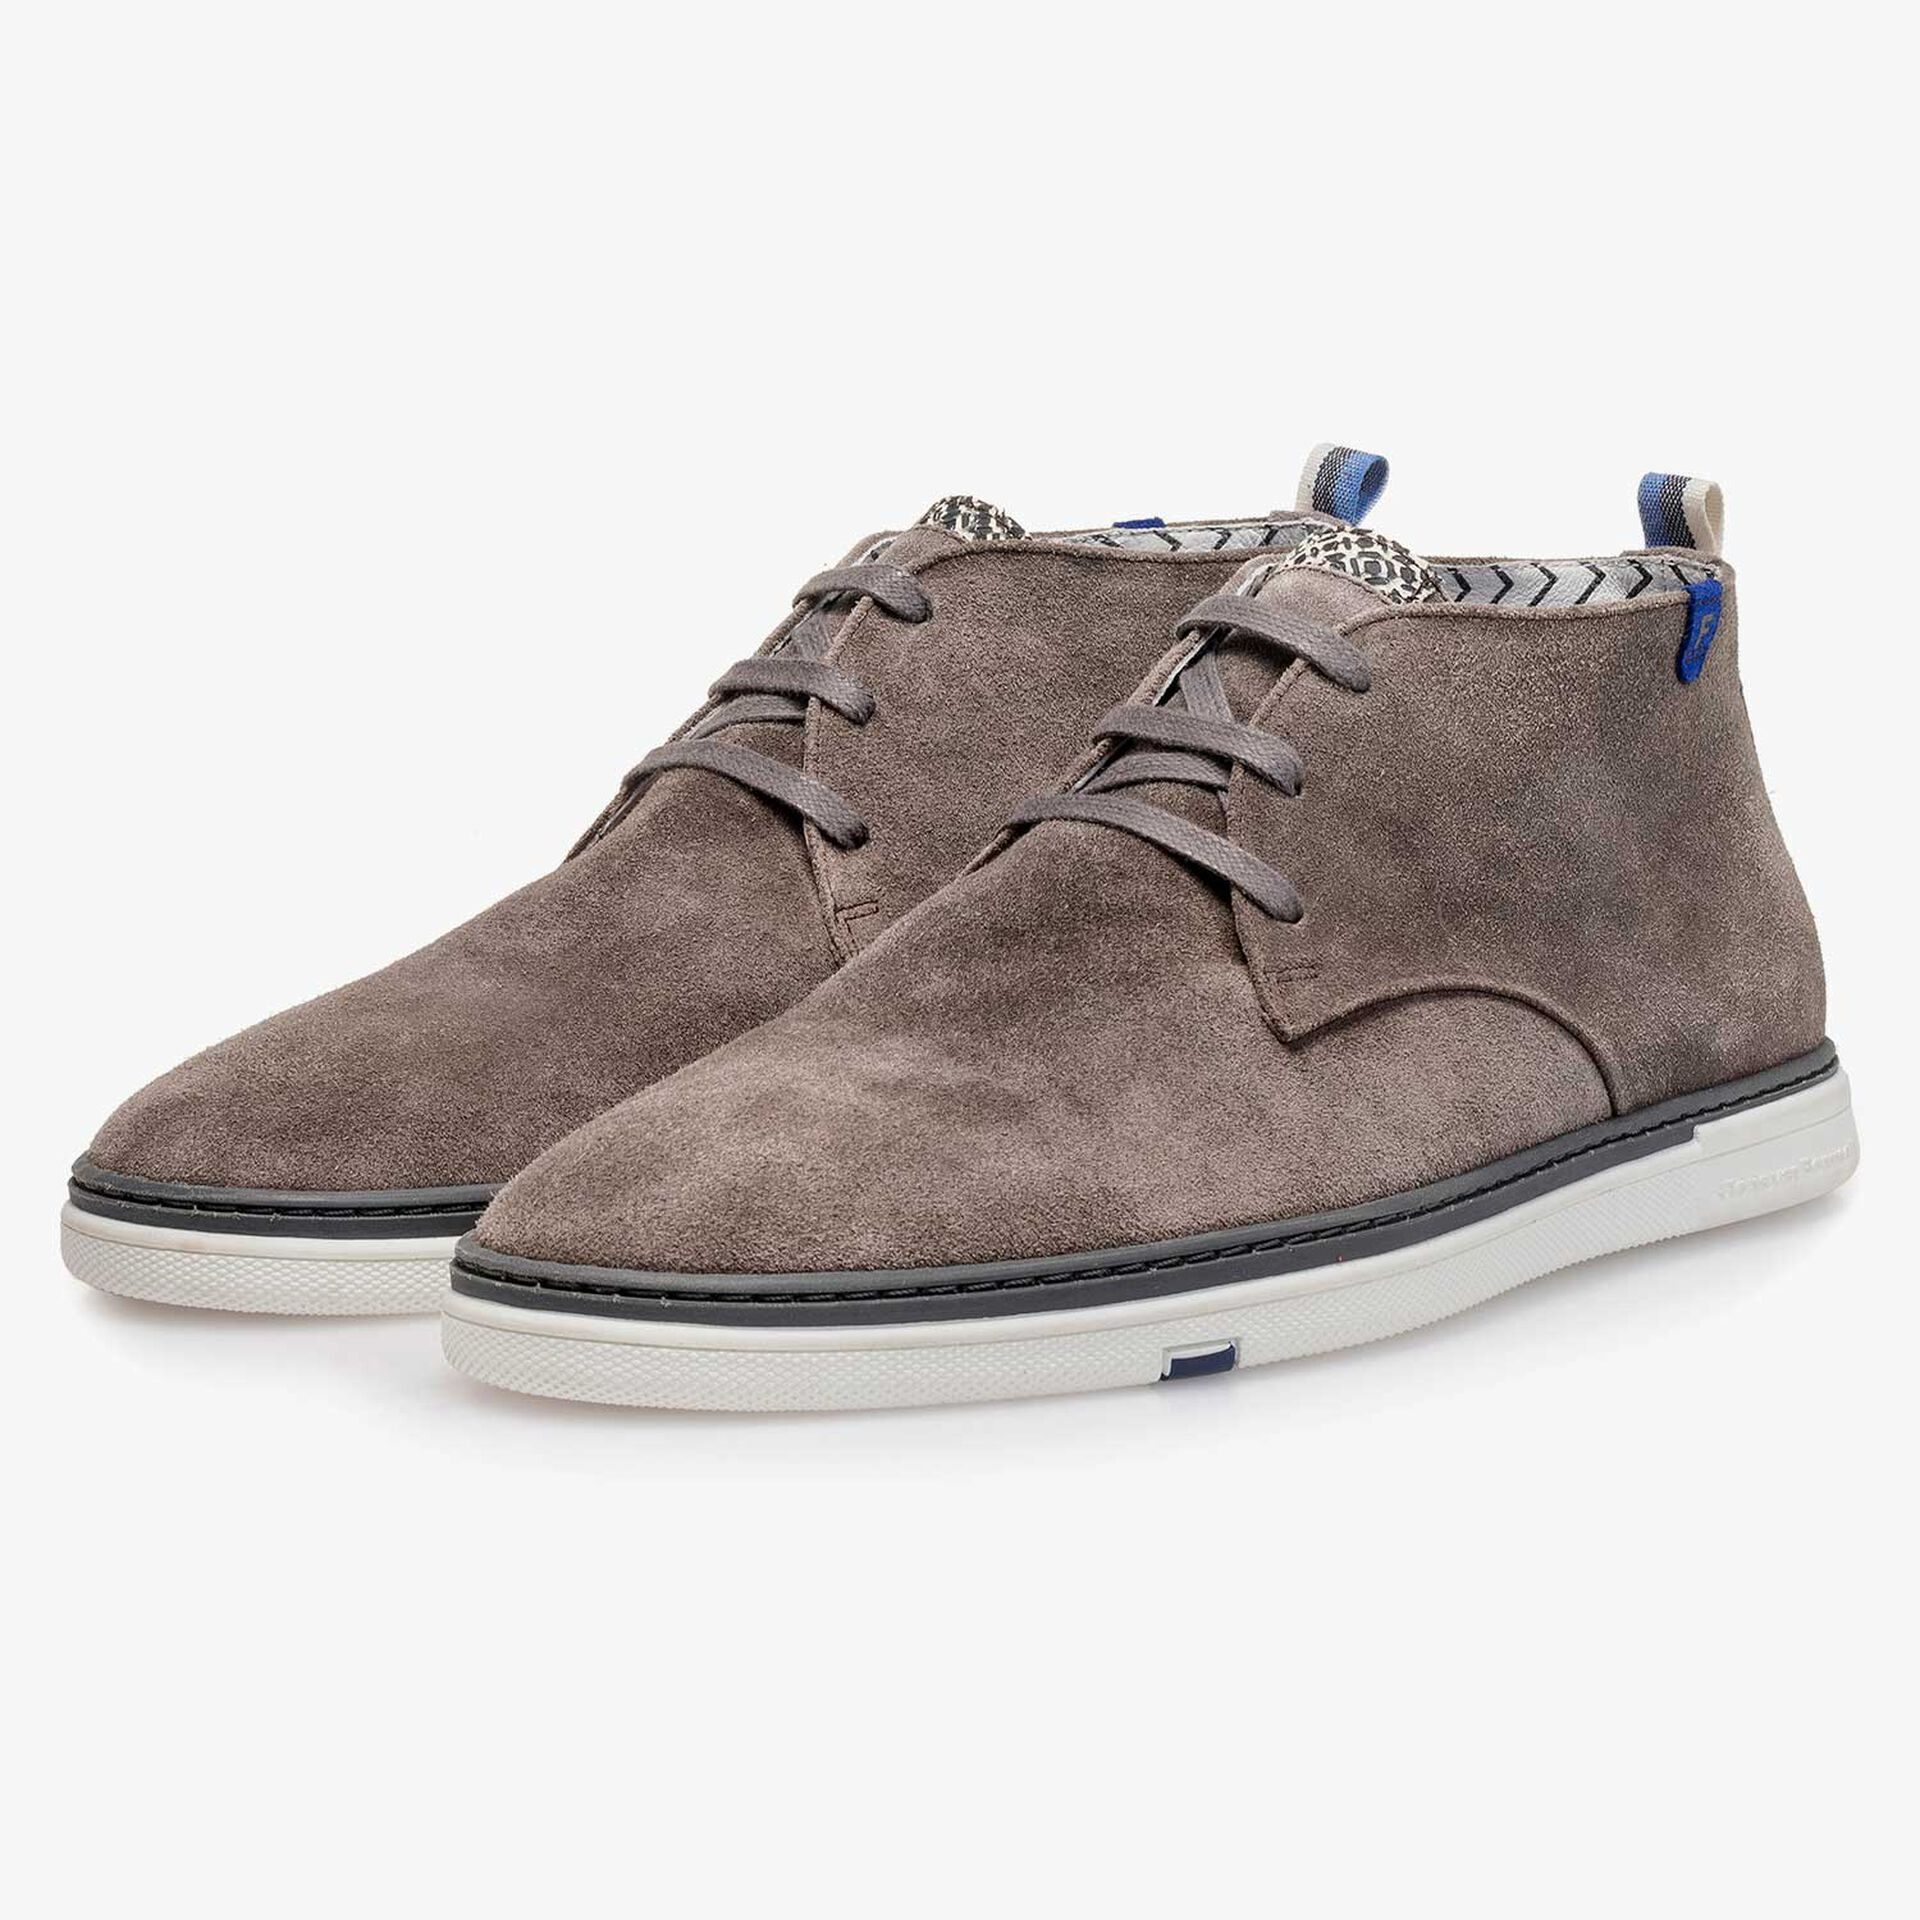 Taupe-coloured slightly buffed suede leather boot